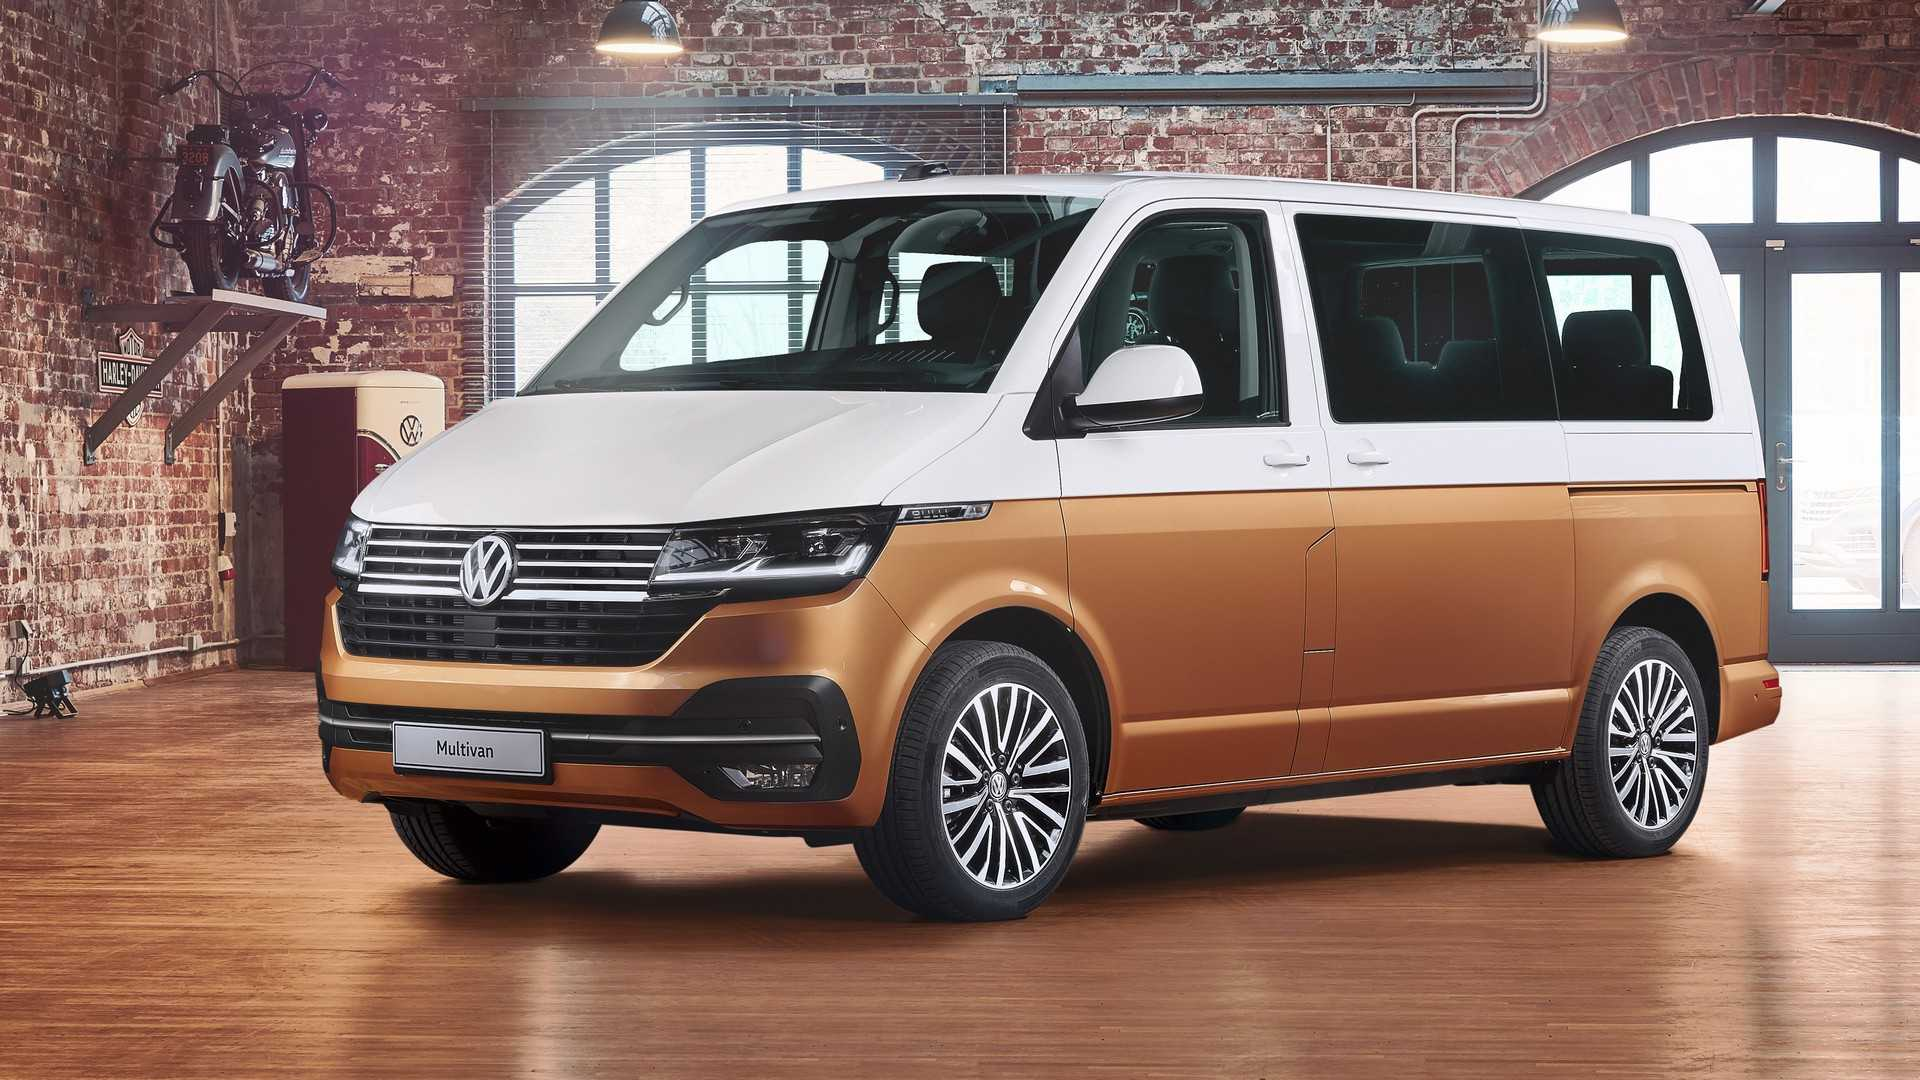 82 Best Review Vw Van 2019 Specs by Vw Van 2019